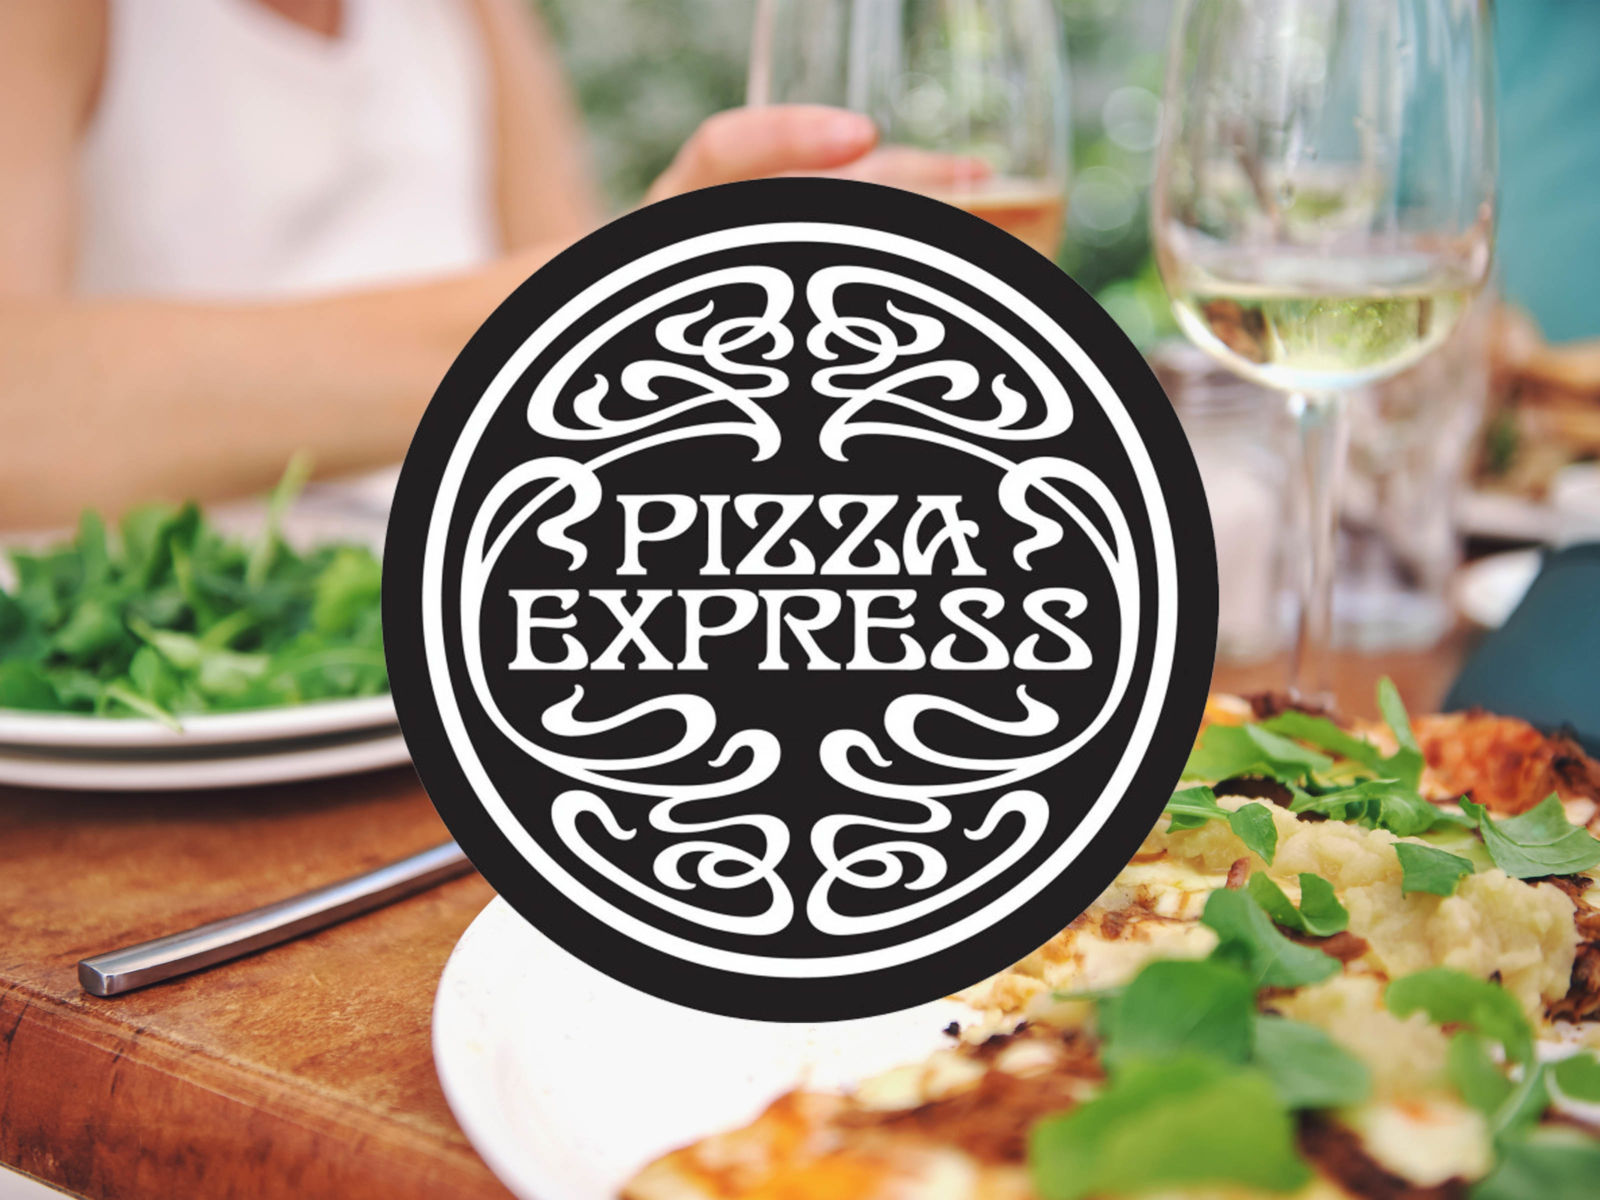 Italian Meal Pizza Express For Groups In Blackpool